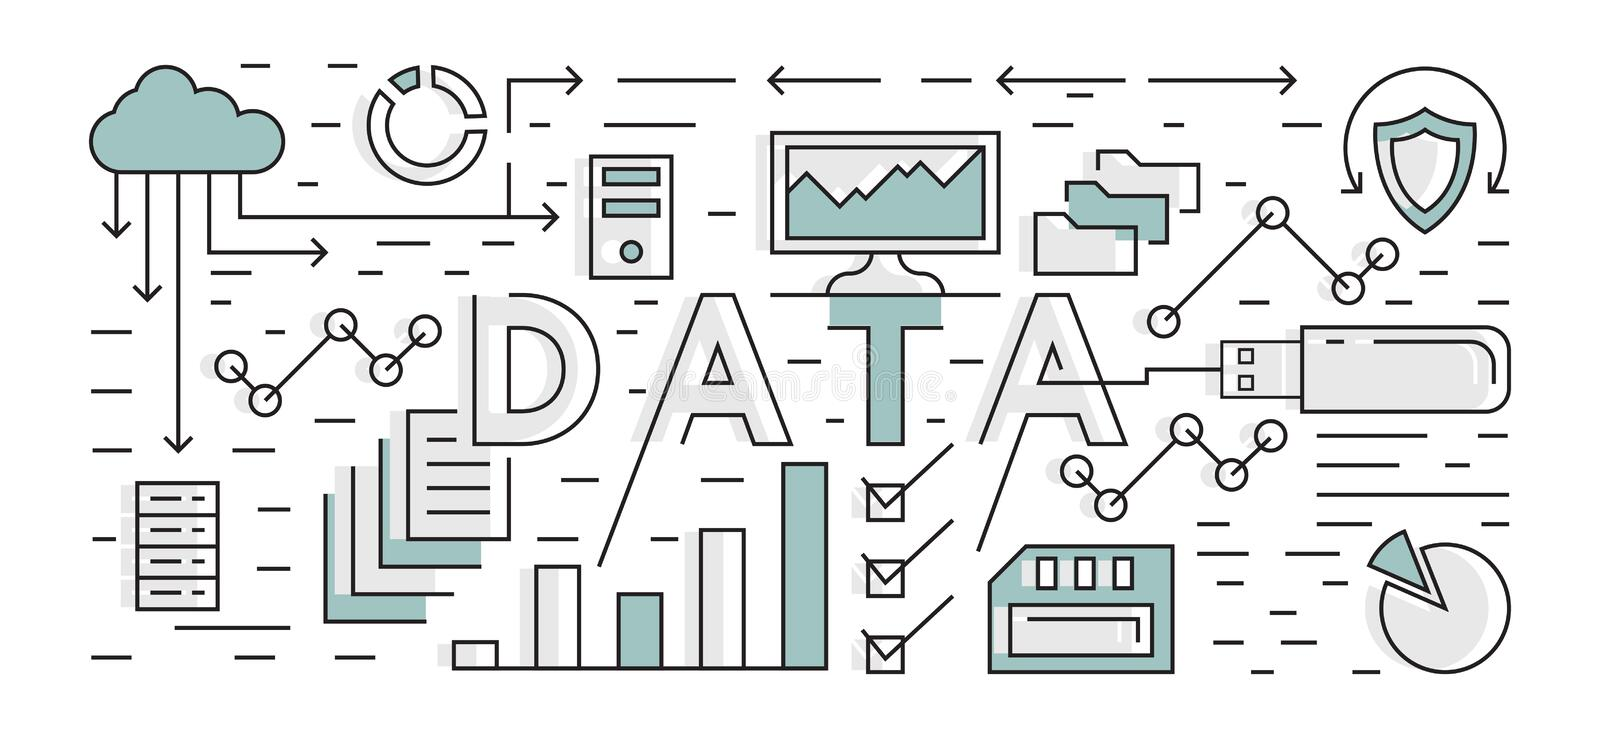 Data And Analytic Illustration. Technology Background. Flat Line Design Geometric With Blue Color. Flat Line Design Geometric With Blue Color. Data And Analytic stock illustration